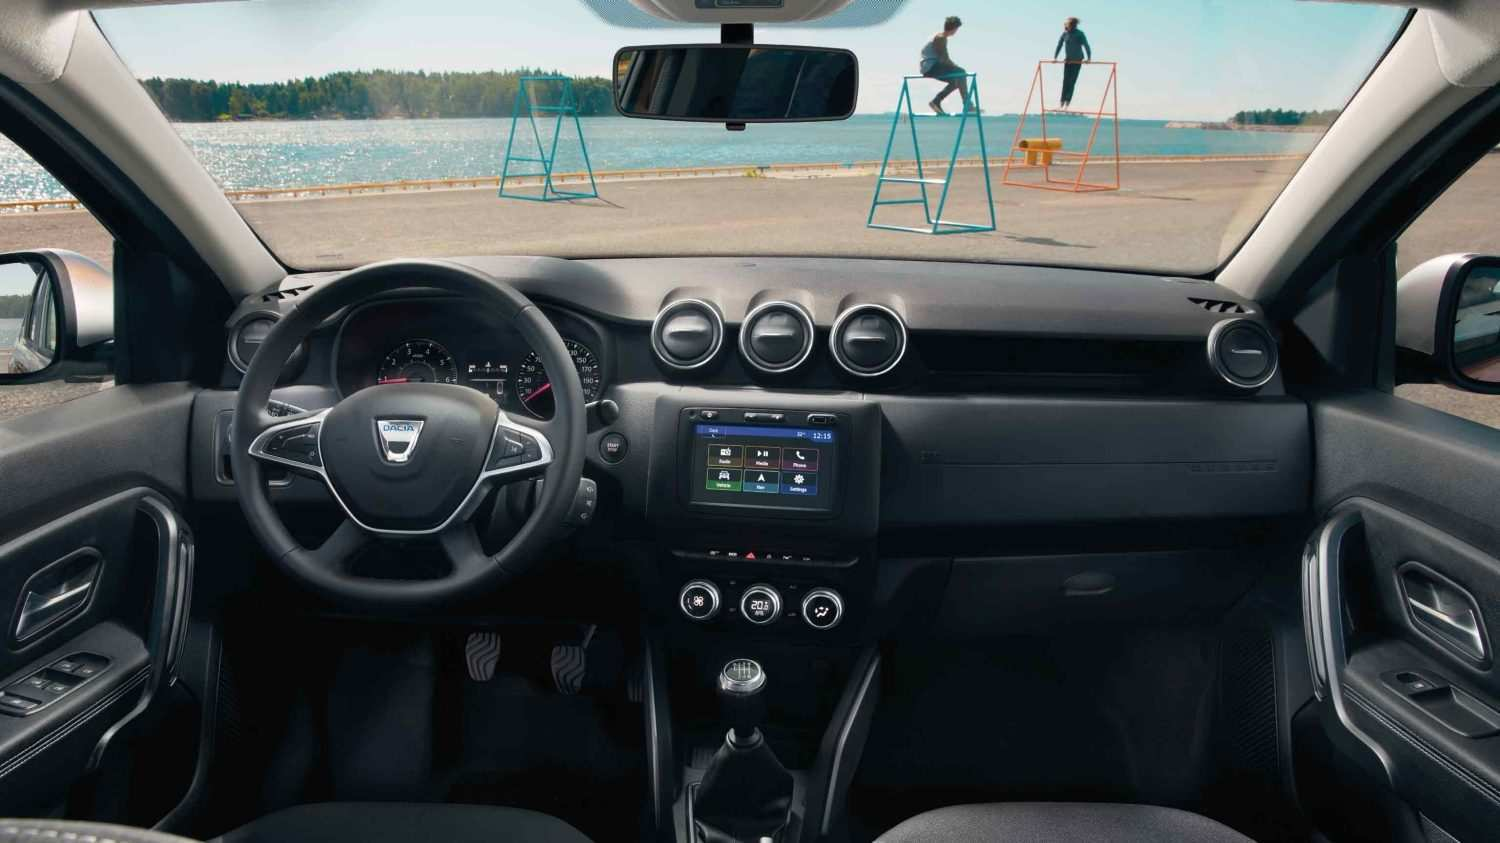 91 The Best Dacia Duster 2019 Interior Redesign And Review